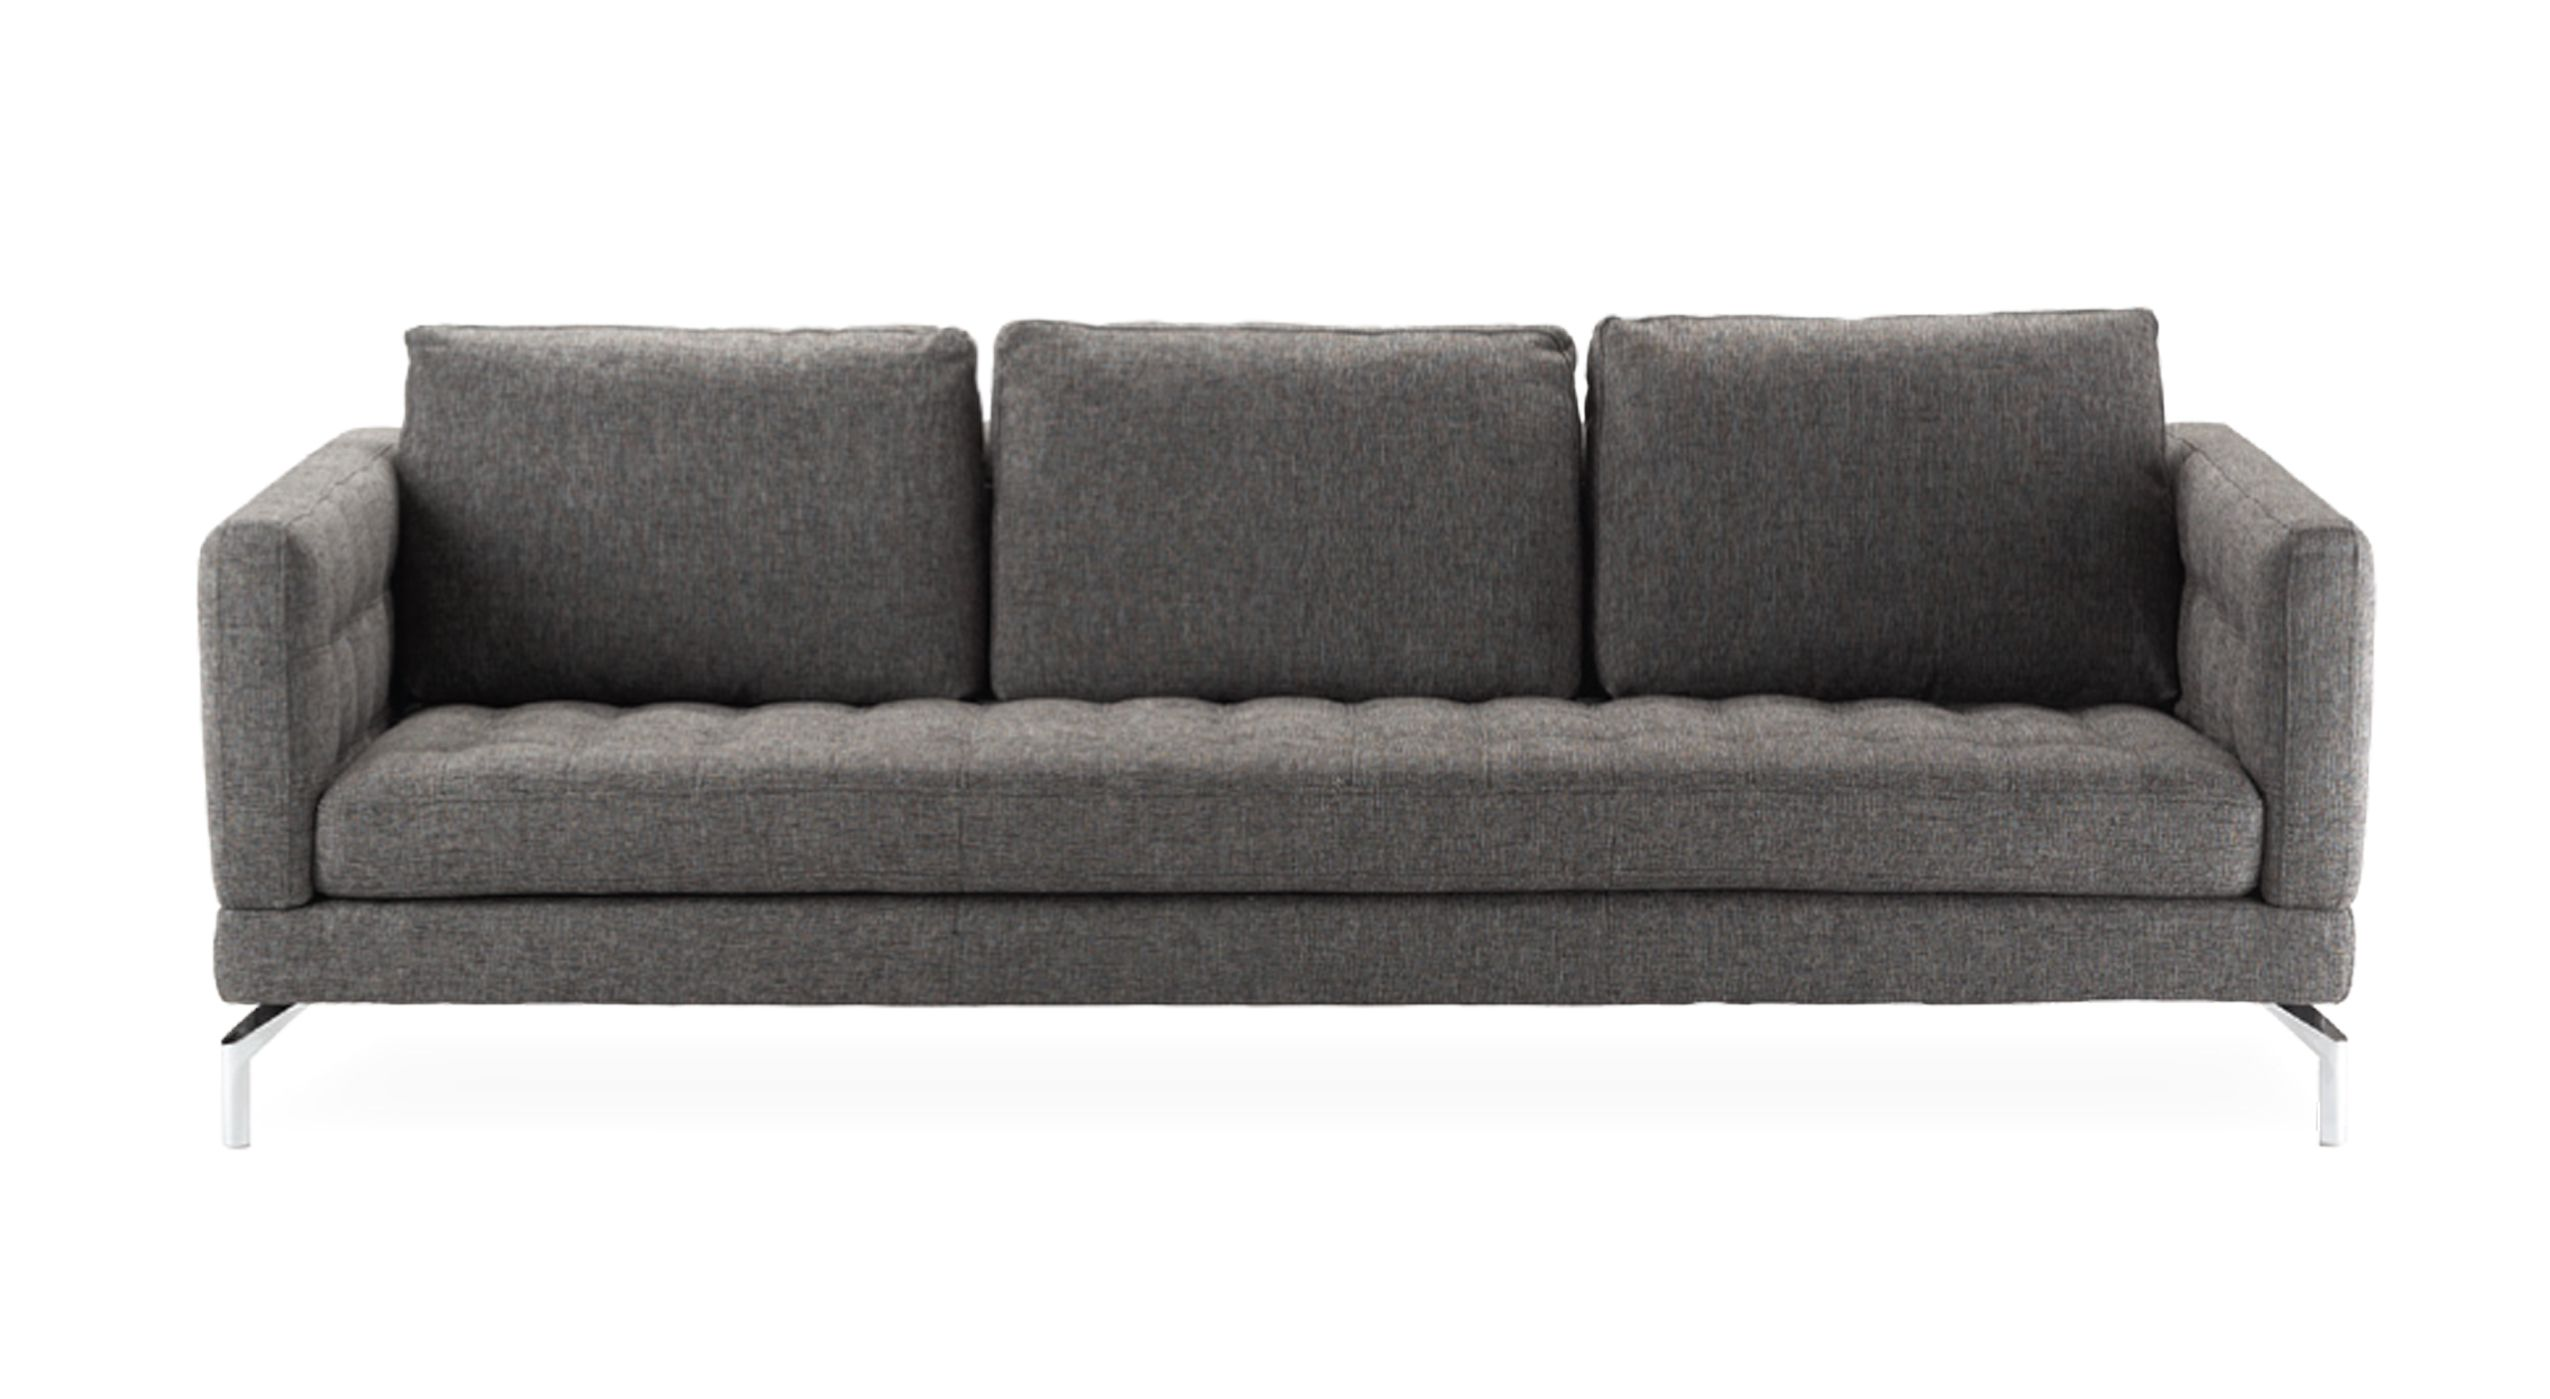 down feather sofa karlstad chaise cover arcadia in charcoal fabric tufted seat with